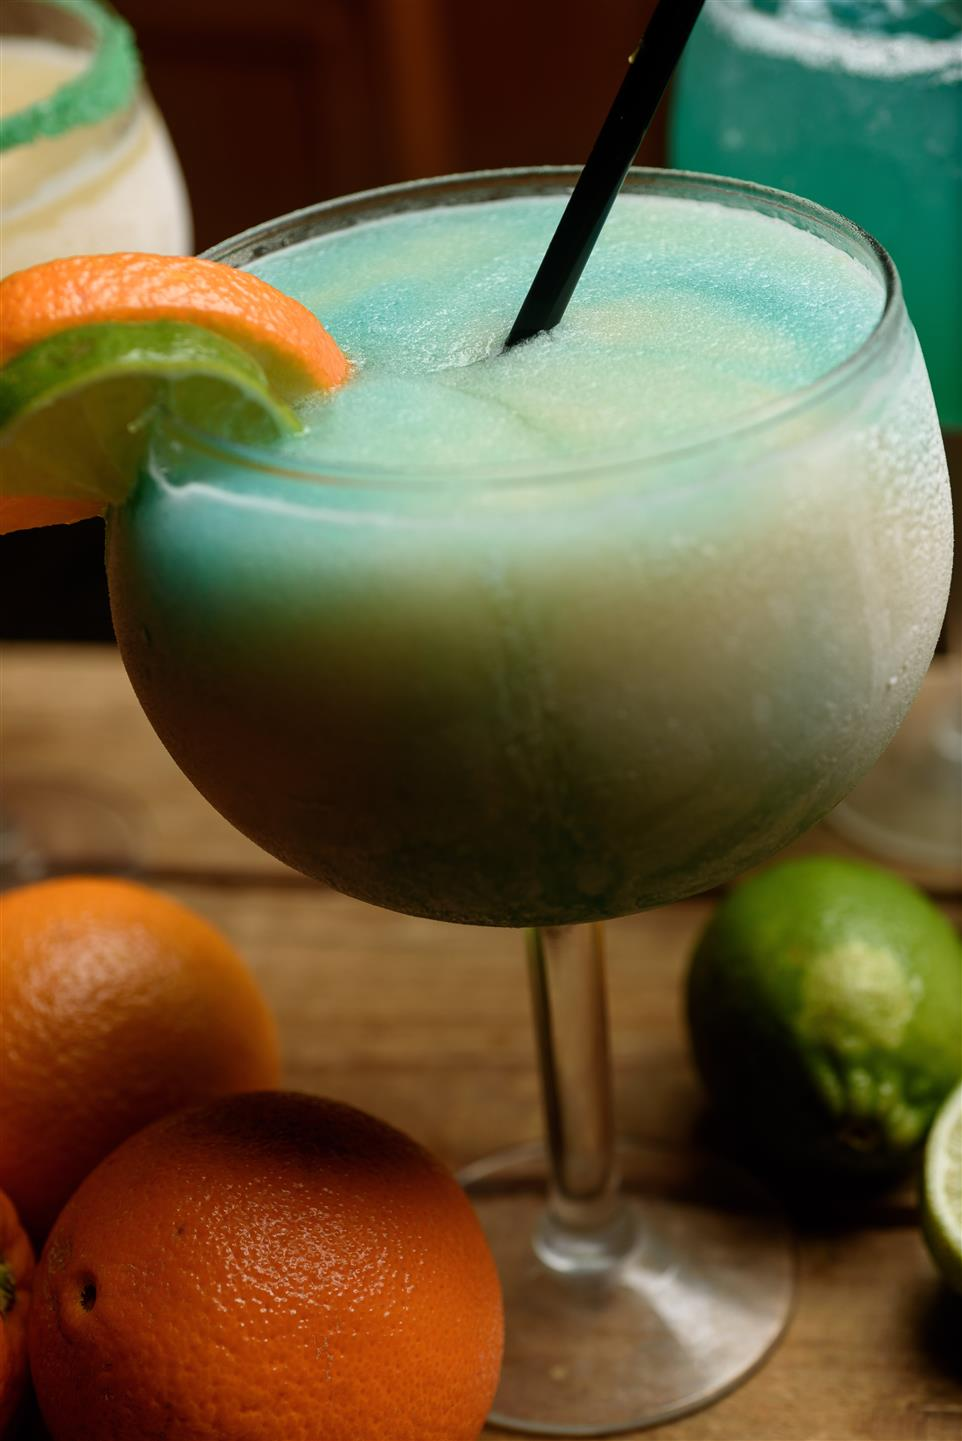 Beige and blue colored drink in margarita glass with lime and orange wedge